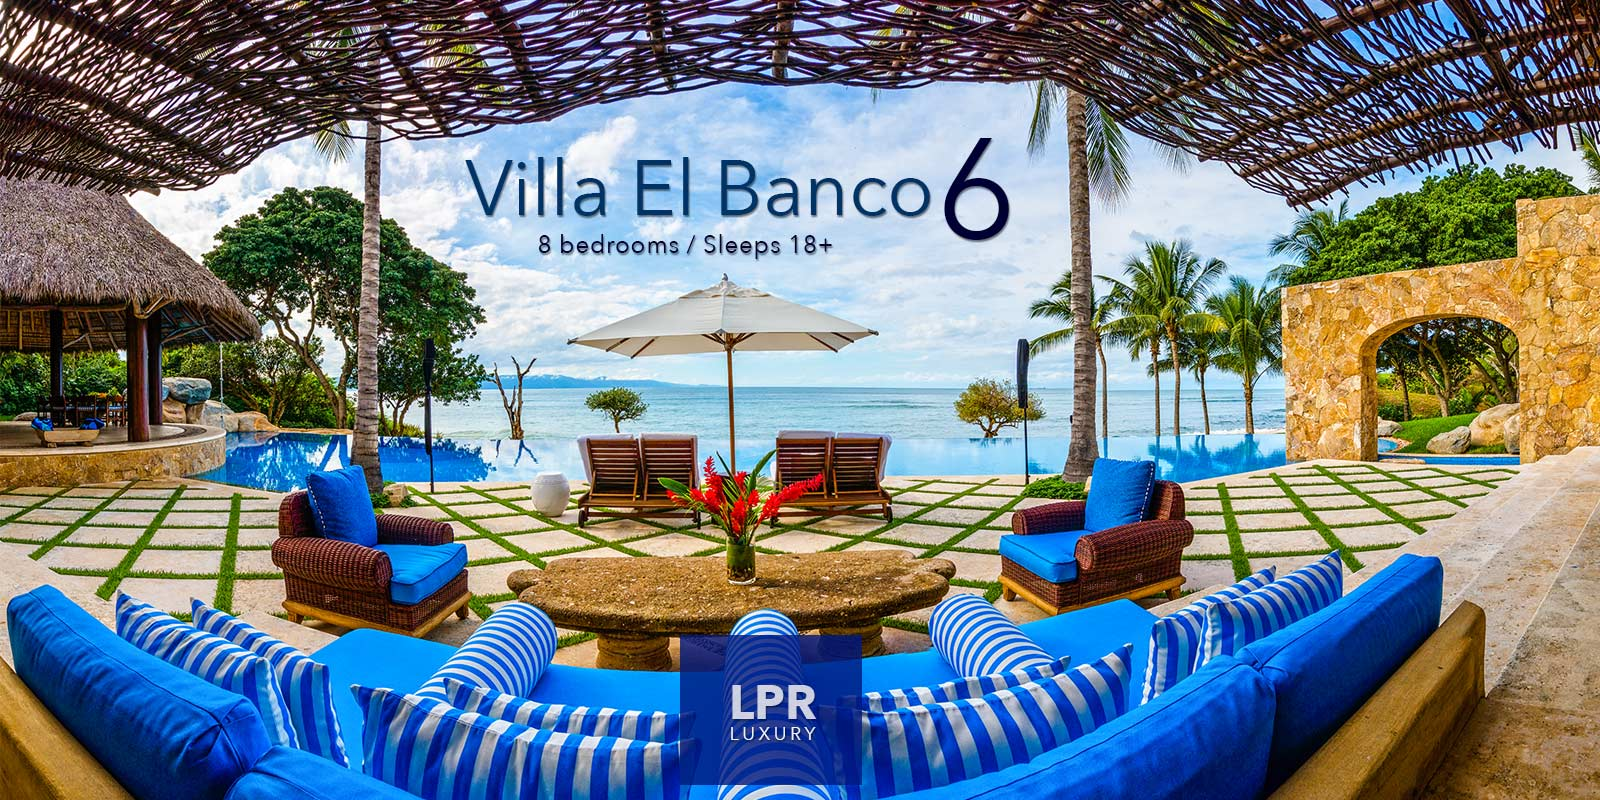 Villa El Banco 6 - Ultra Luxury Punta de Mita Vacation Rental Villa - Mexico